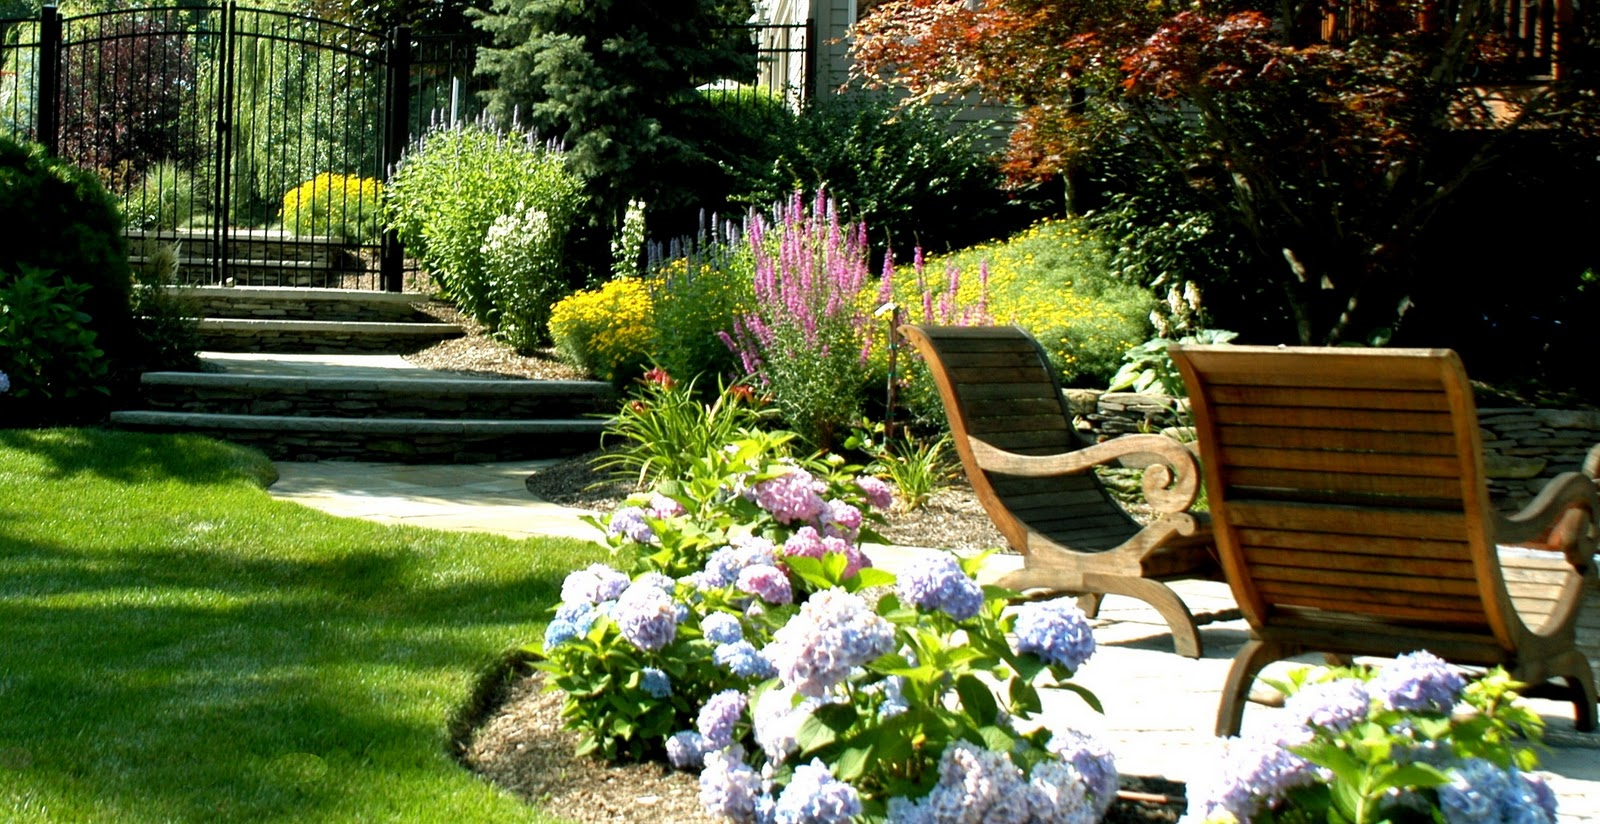 Hightechlandscapes new jersey landscape design for Design and landscape